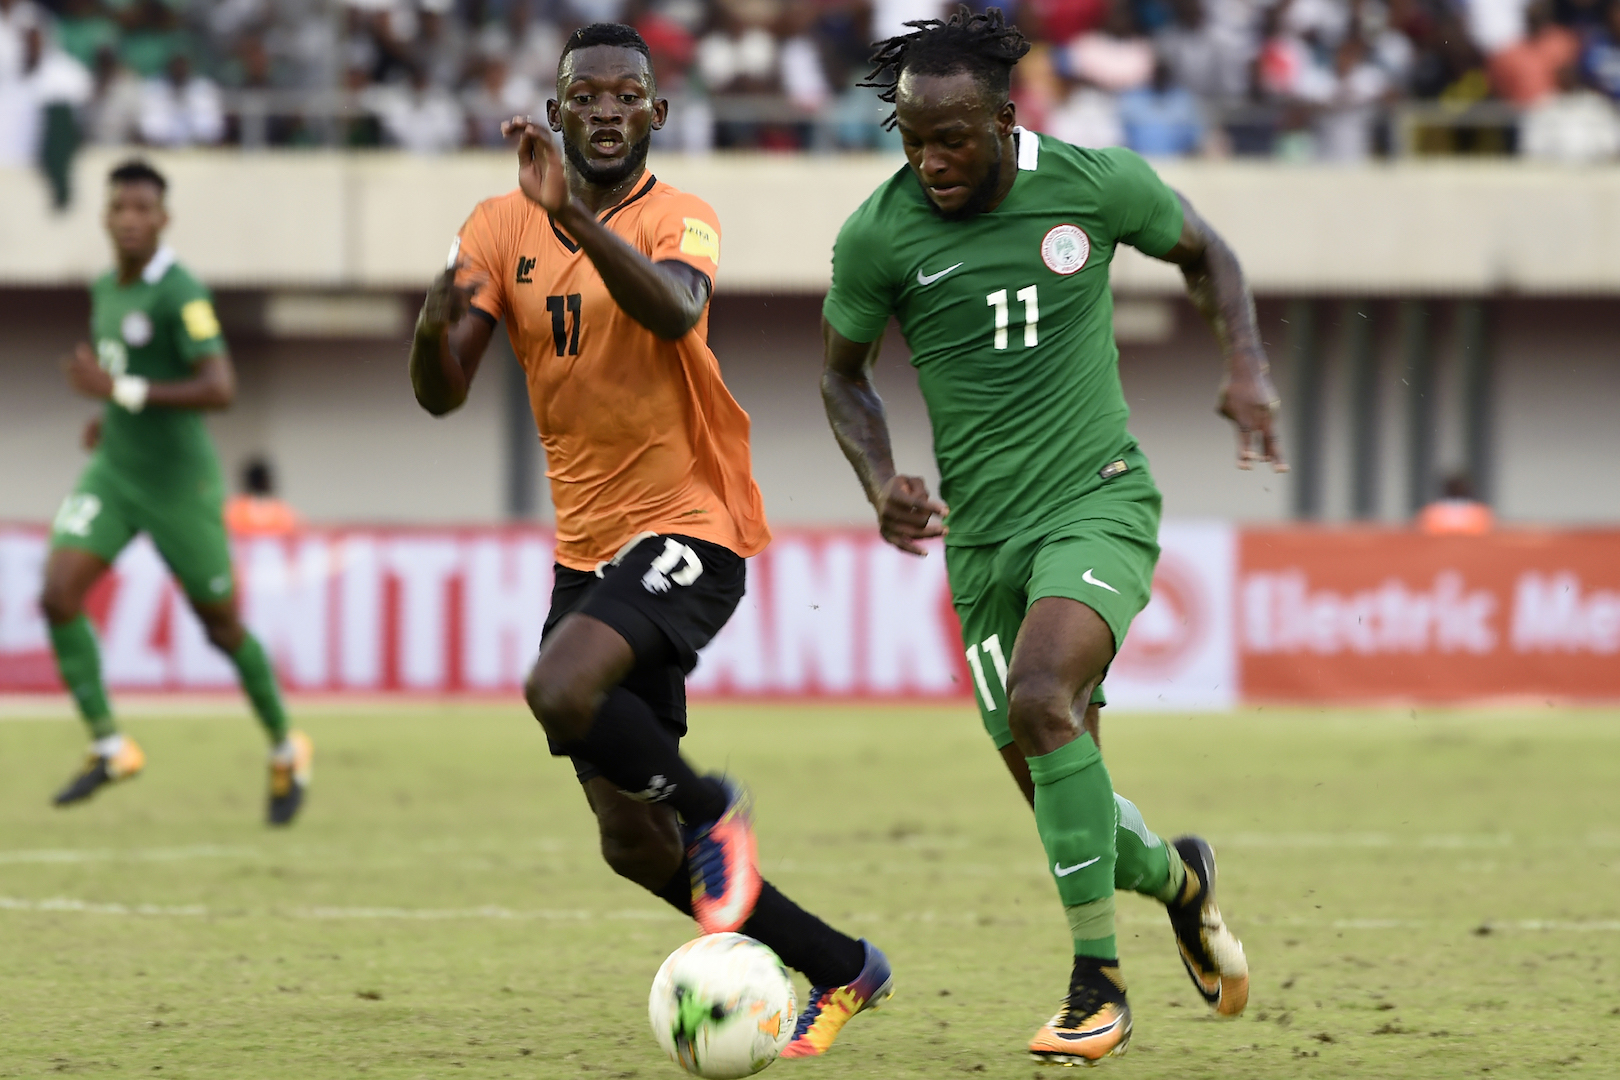 Nigerian attacker Victor Moses (R) tries to run past Zambia Chisamba Lungu during the FIFA World Cup 2018 qualifying football match between Nigeria and Zambia in Uyo, Akwa Ibom State, on October 7, 2017. / AFP PHOTO / PIUS UTOMI EKPEI (Photo credit should read PIUS UTOMI EKPEI/AFP/Getty Images)